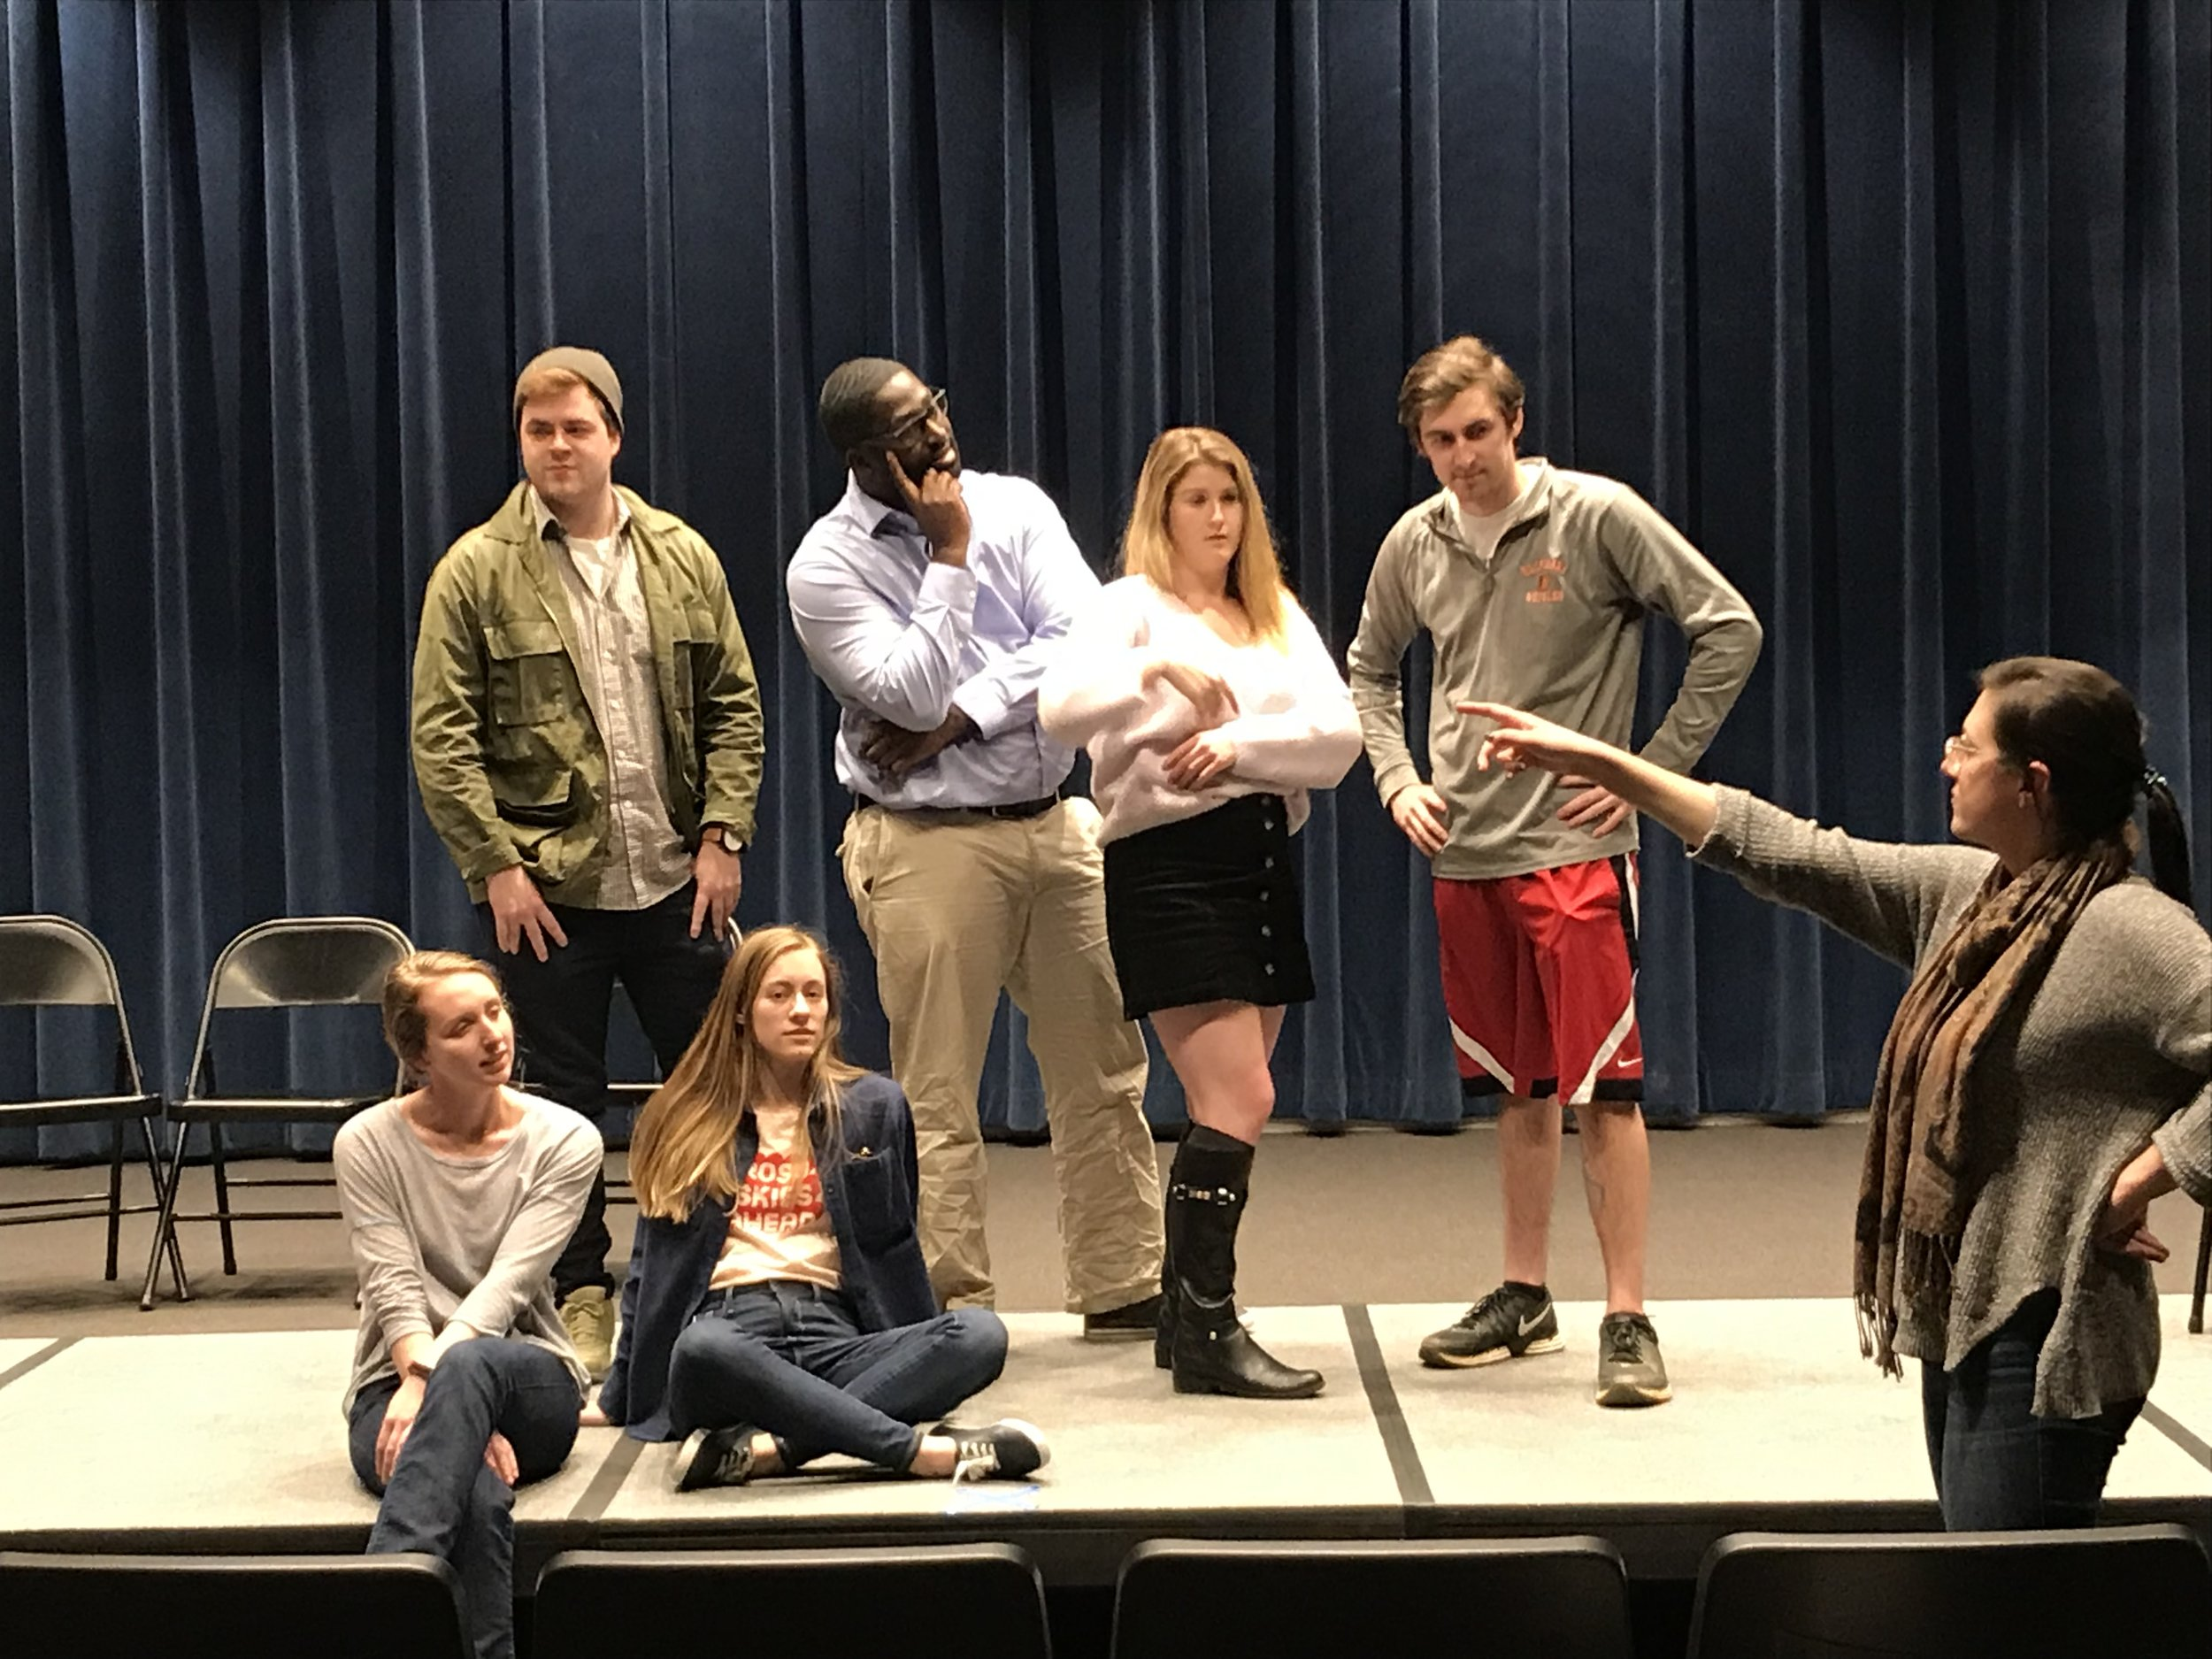 Nicole Llinares '19 gives stage directions to a group of actors. Photo credit Kim Hopkin '19.